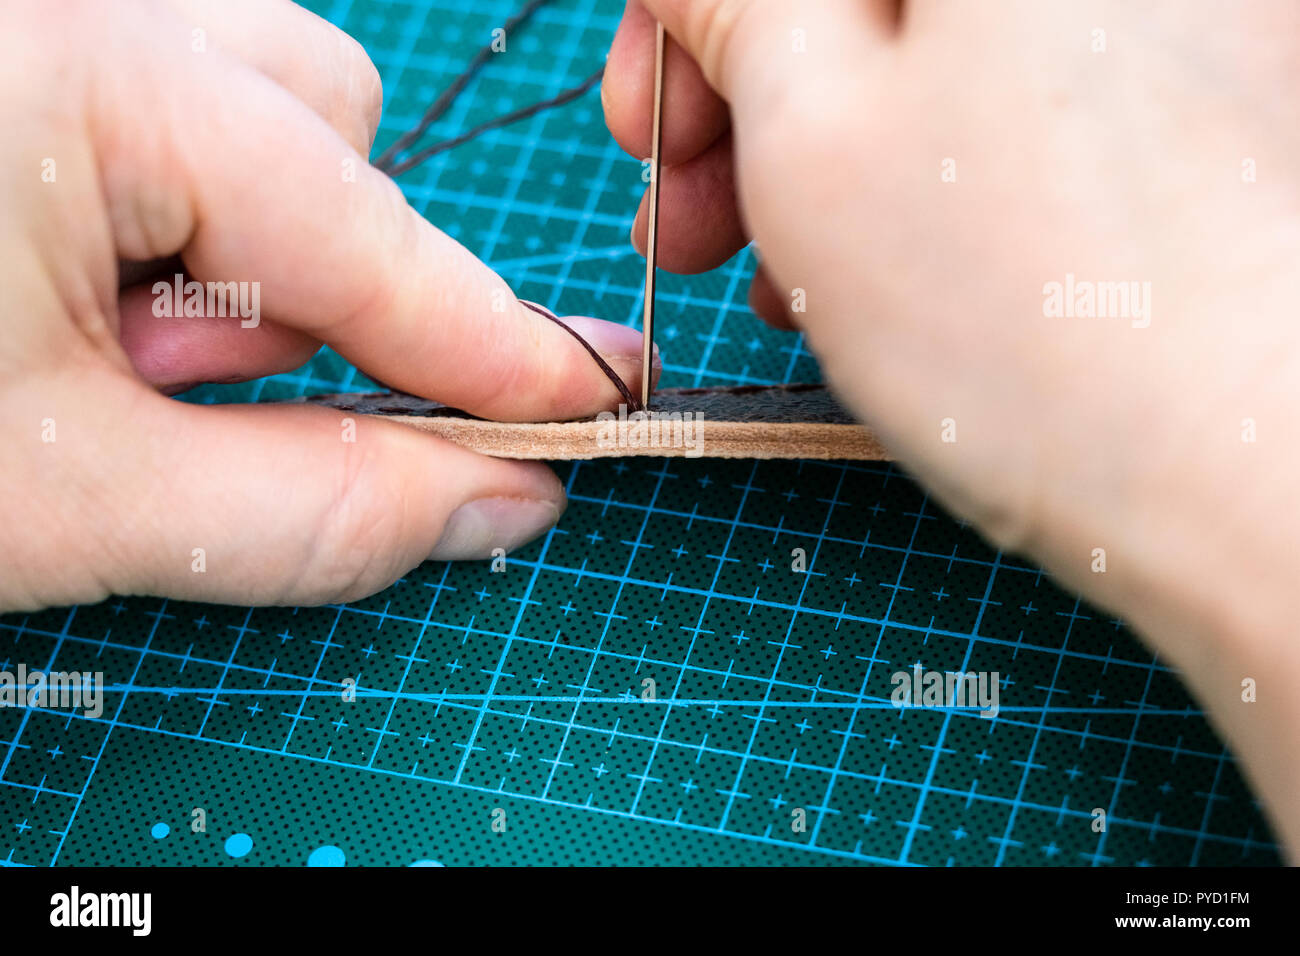 workshop of making the carved leather bag - craftsman stitches the belt for leather handbag by needle with thread - Stock Image